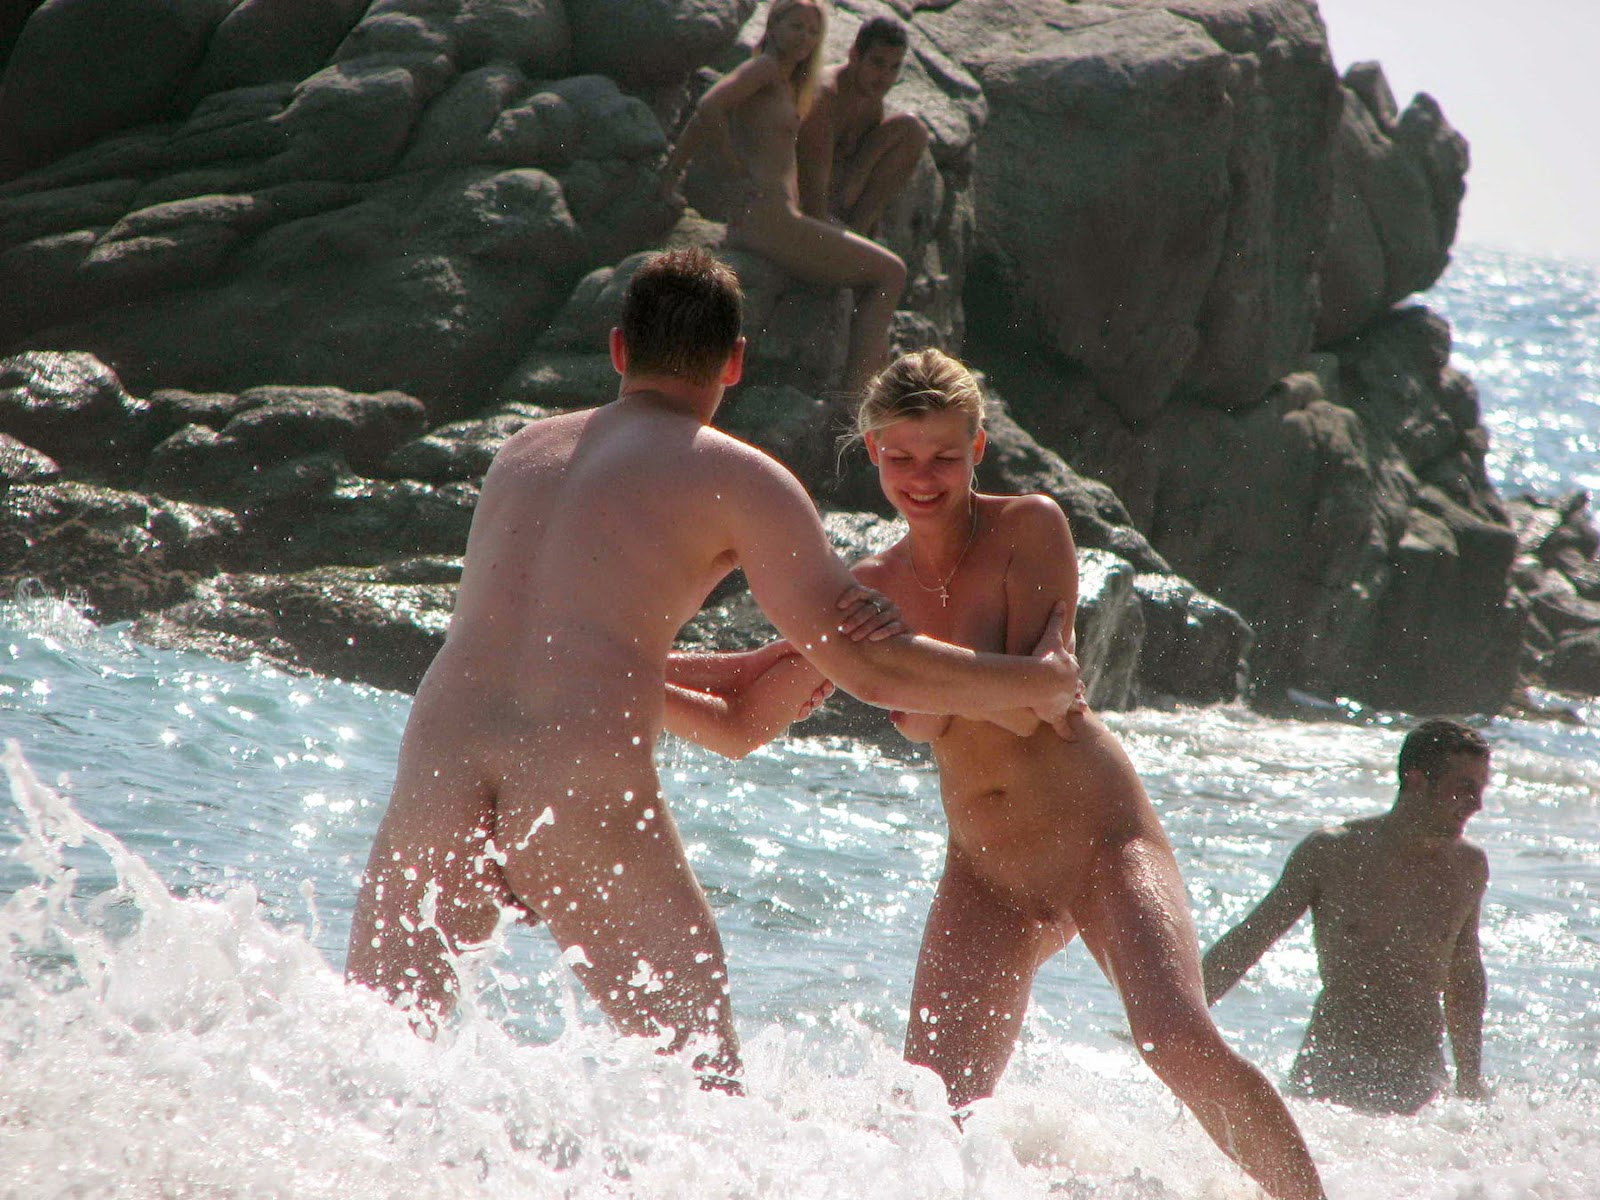 nudist women having fun